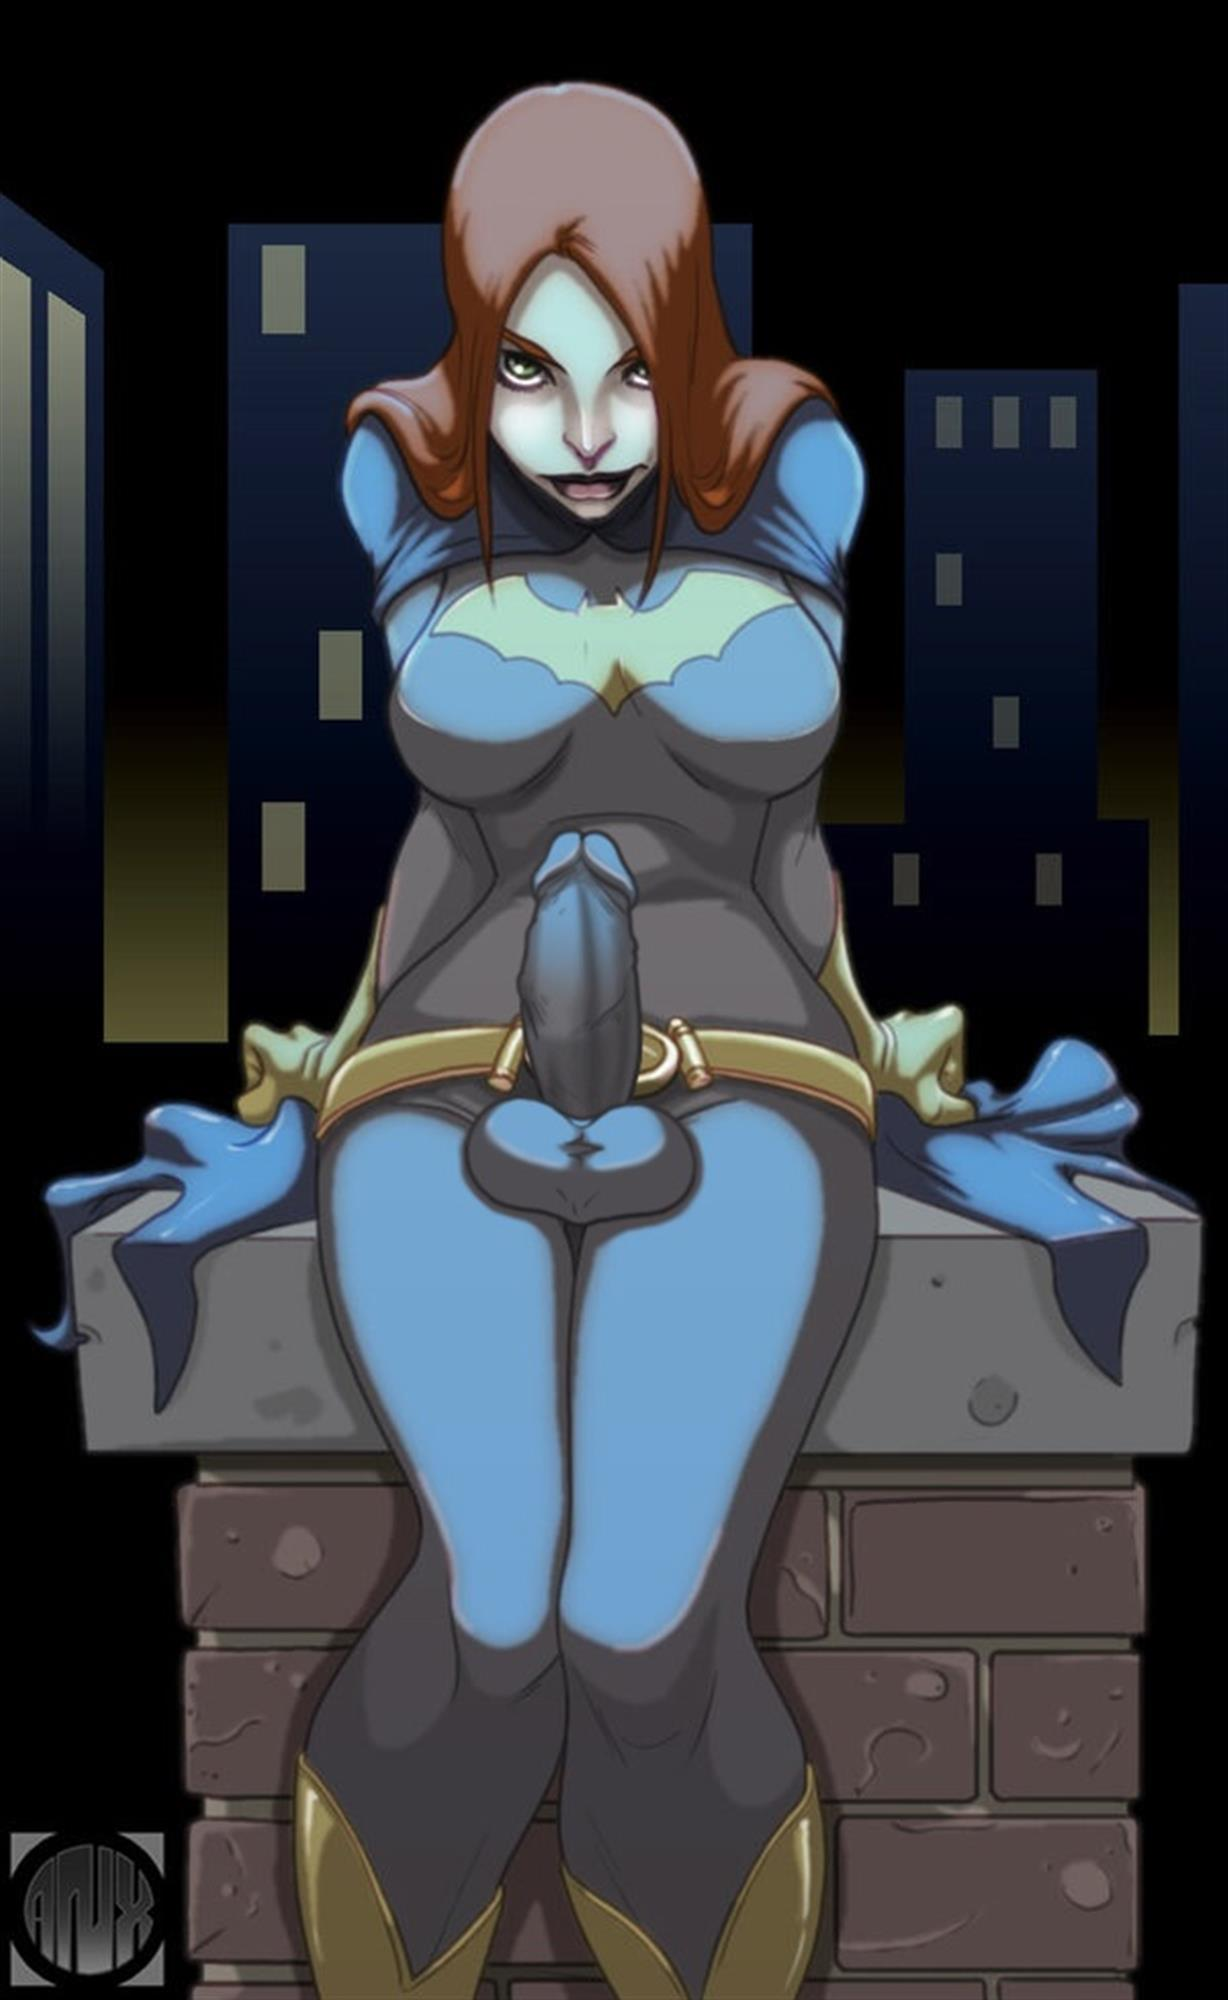 Batgirl being all dark and moody with an erect dick